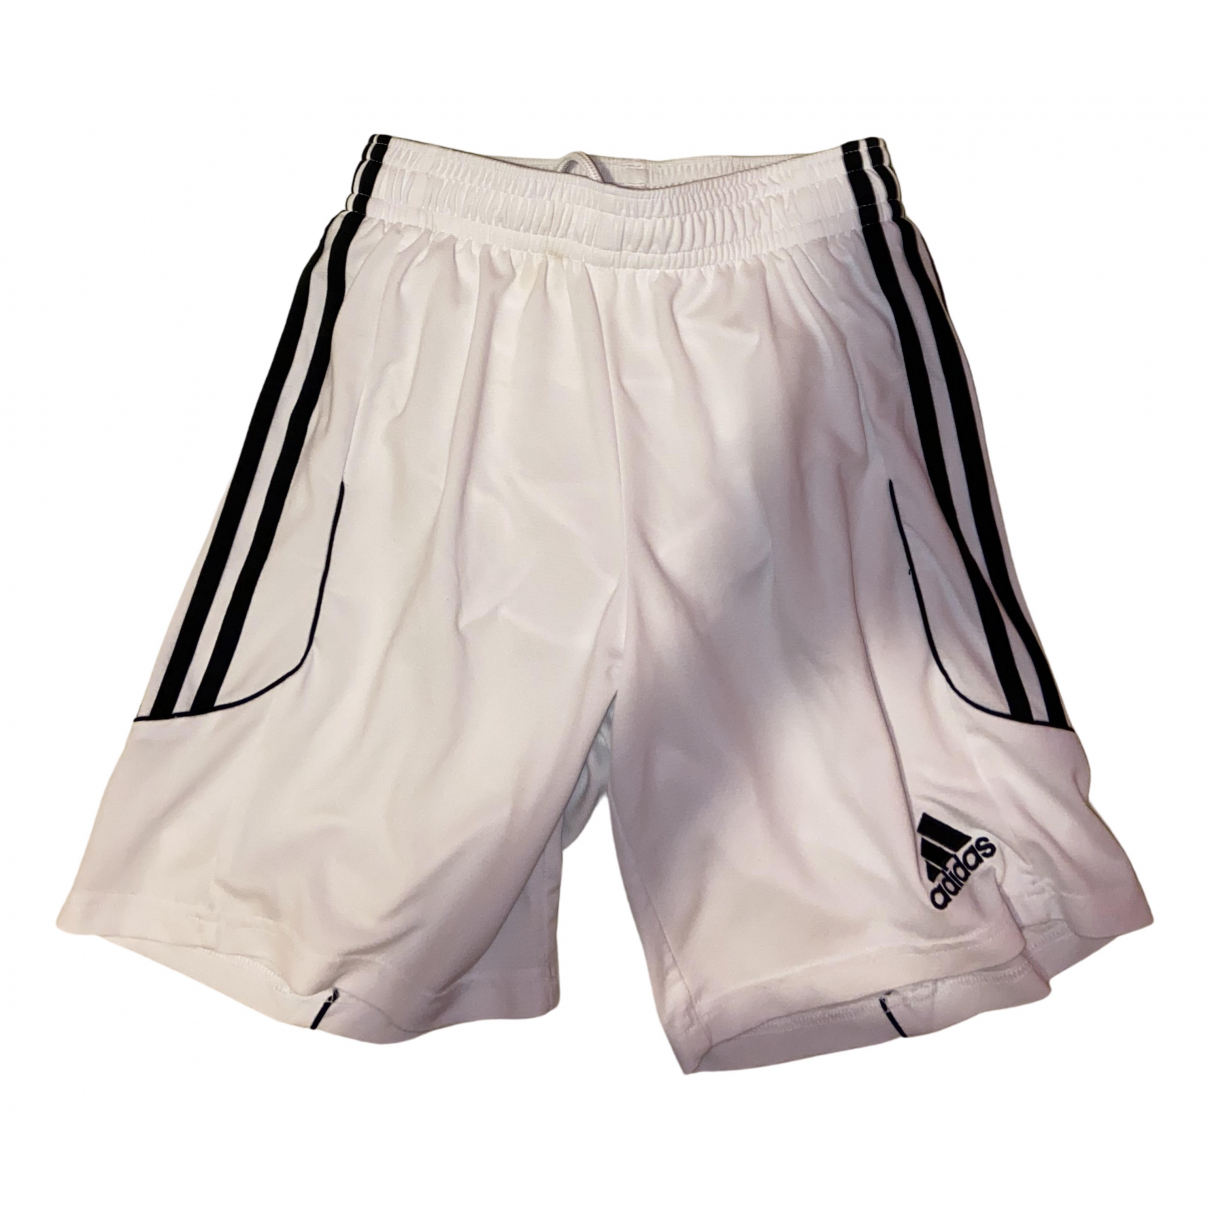 Adidas \N White Cotton Shorts for Women 44 IT